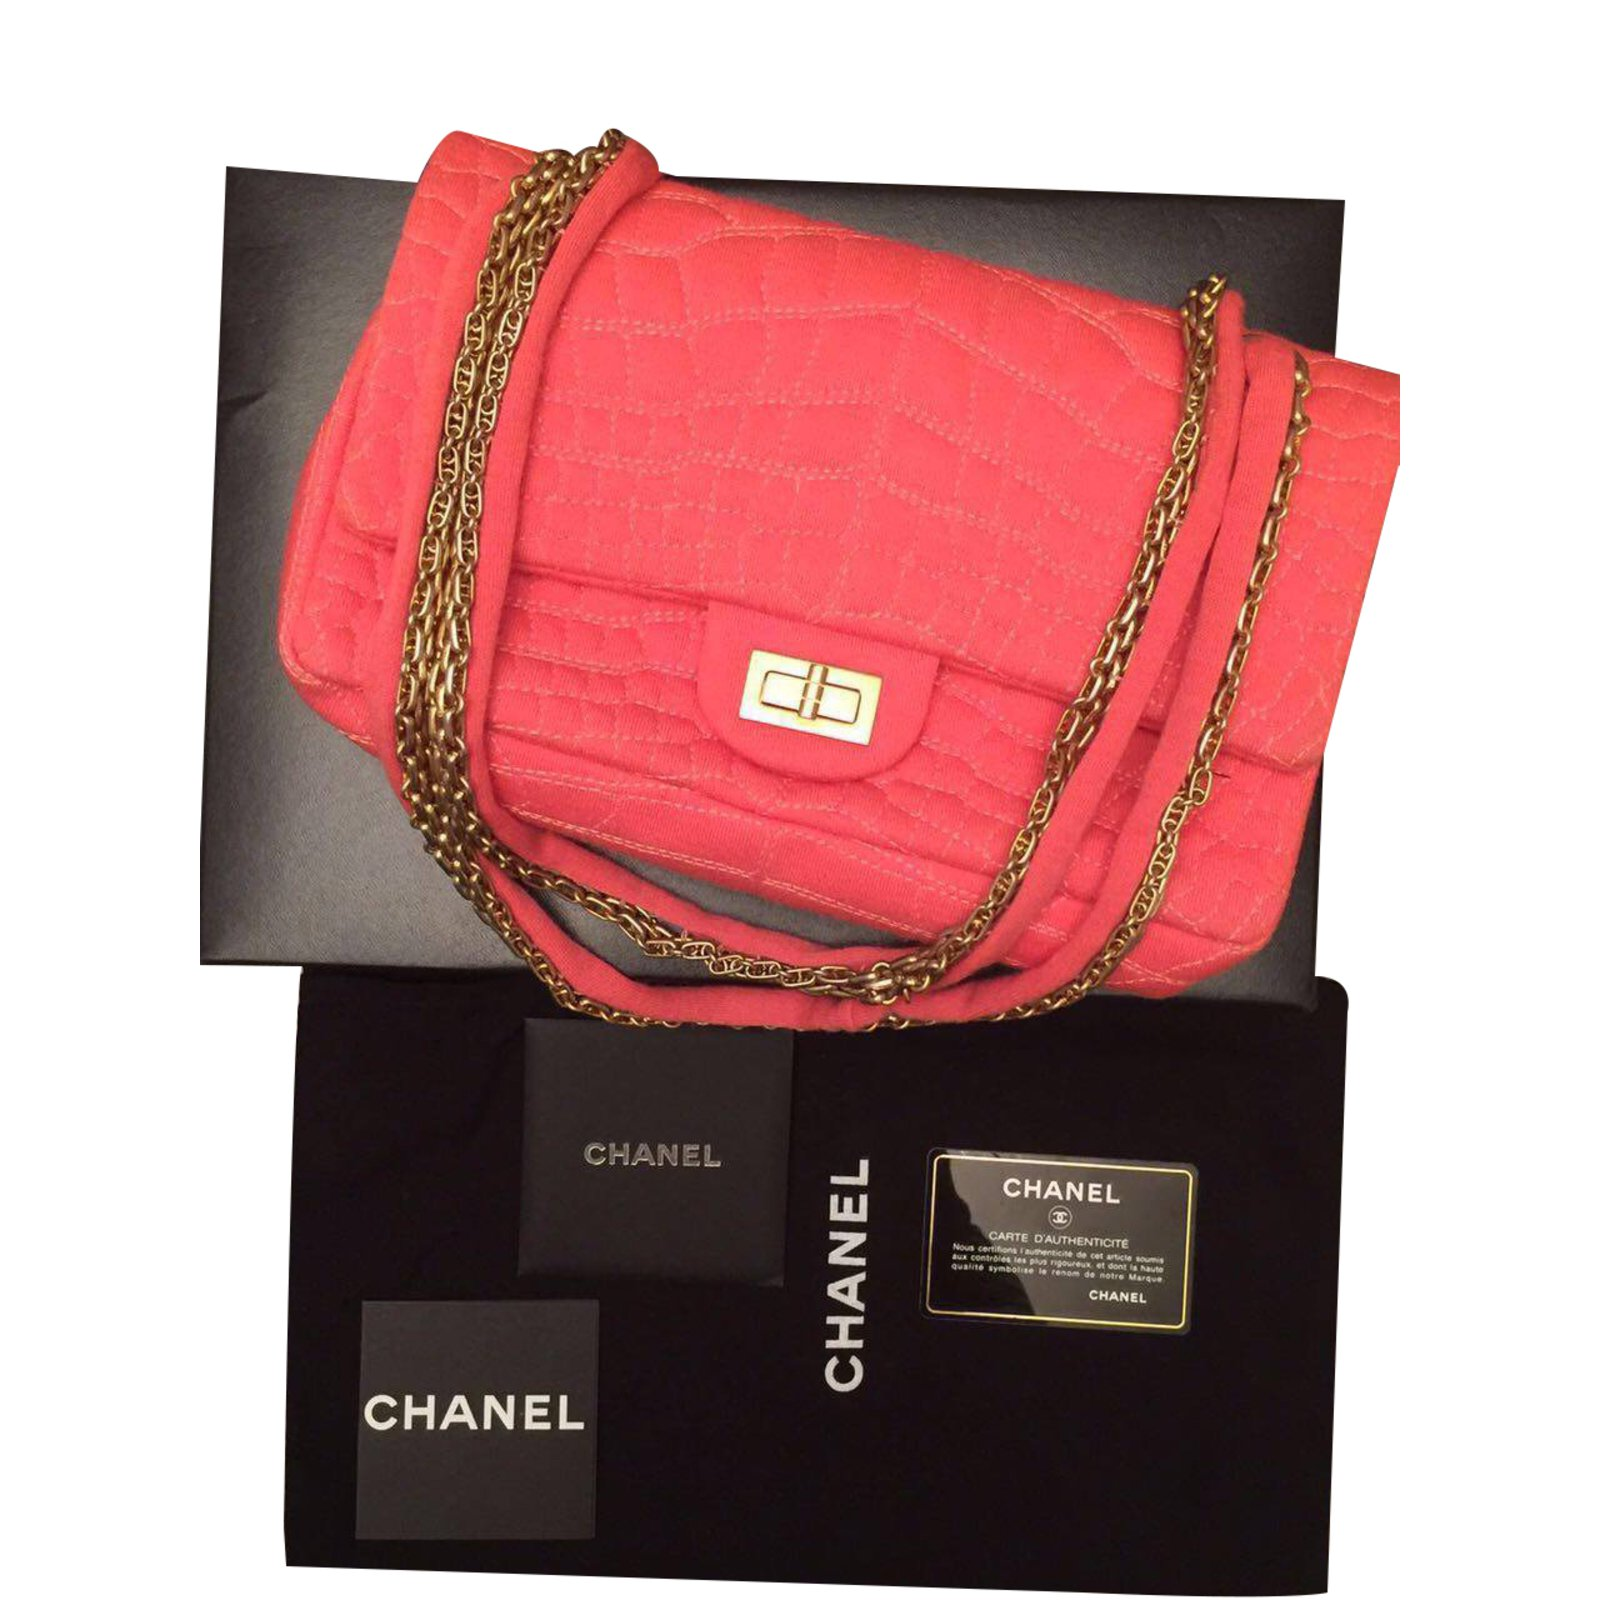 chanel jersey. chanel jersey croc double flap with mirror handbags cloth orange ref.35343